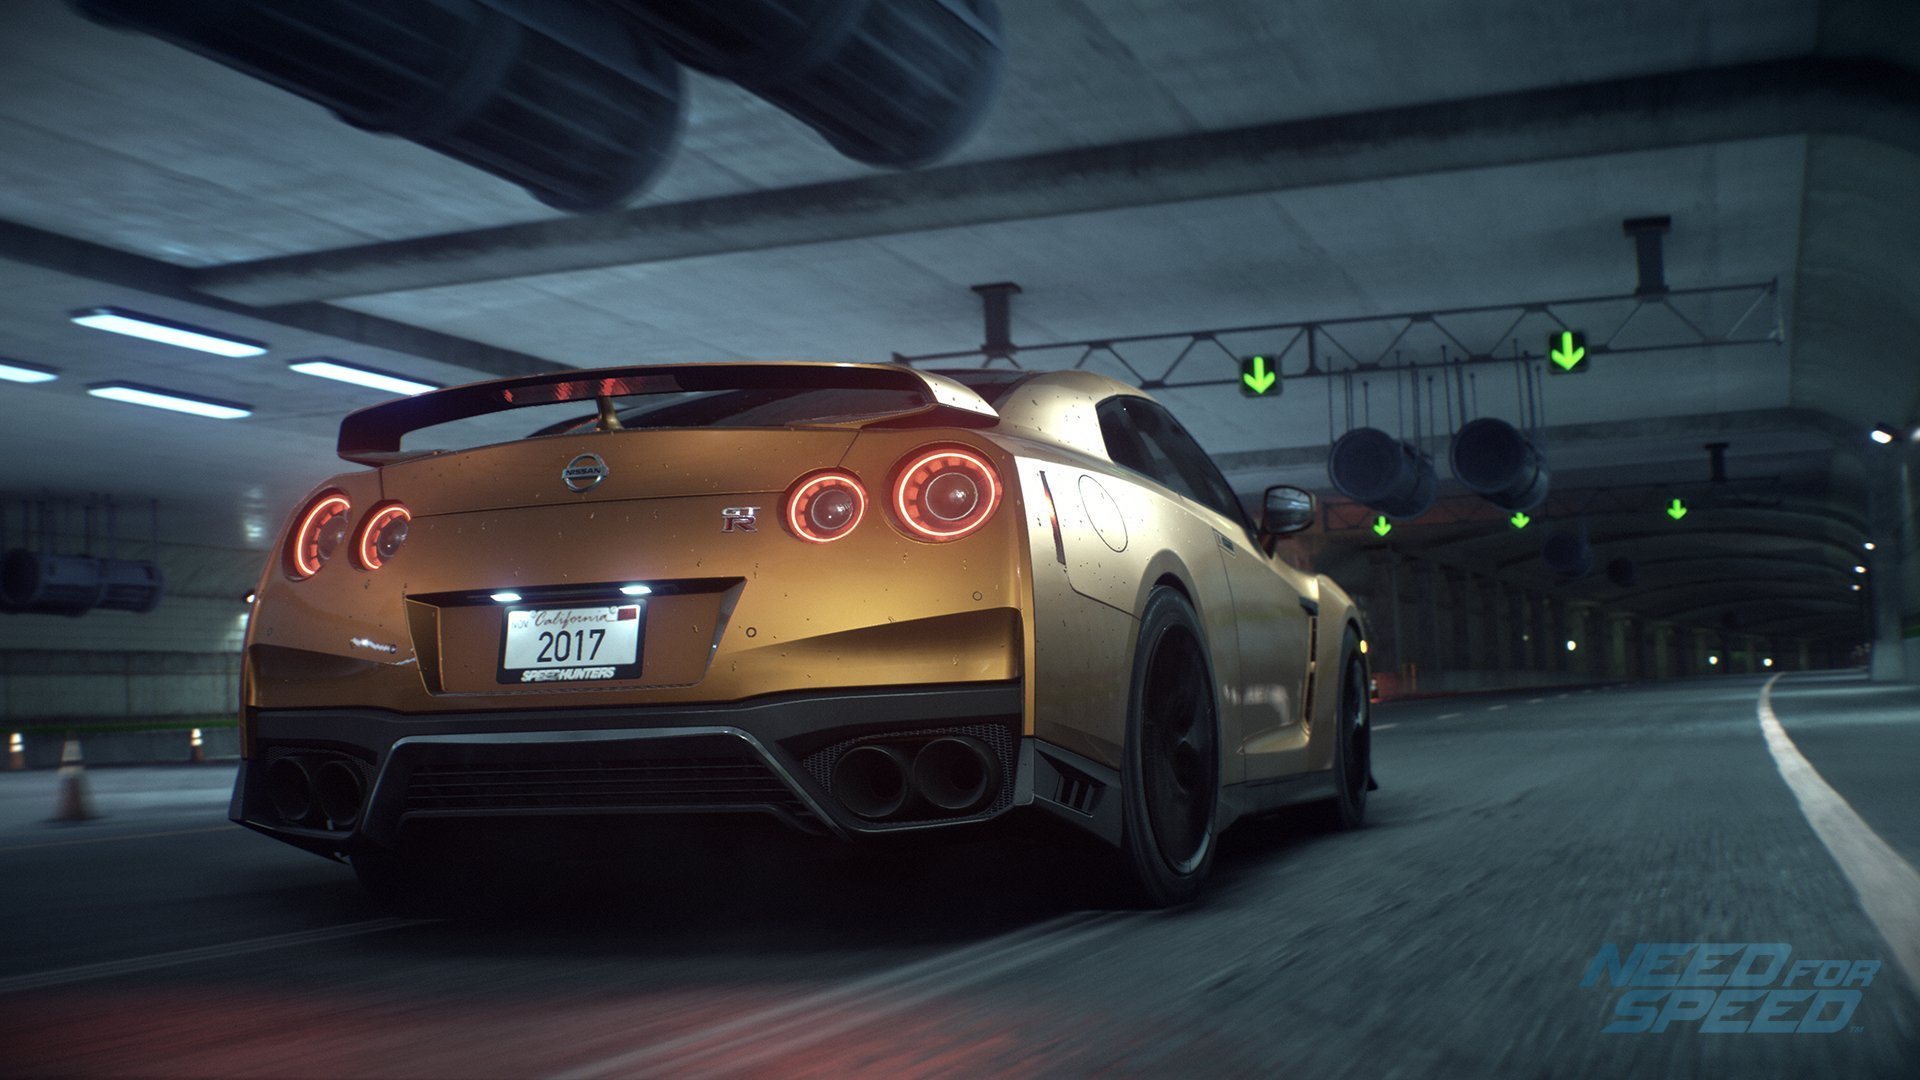 Need for Speed HD Wallpaper Background 25853 Wallur 1920x1080